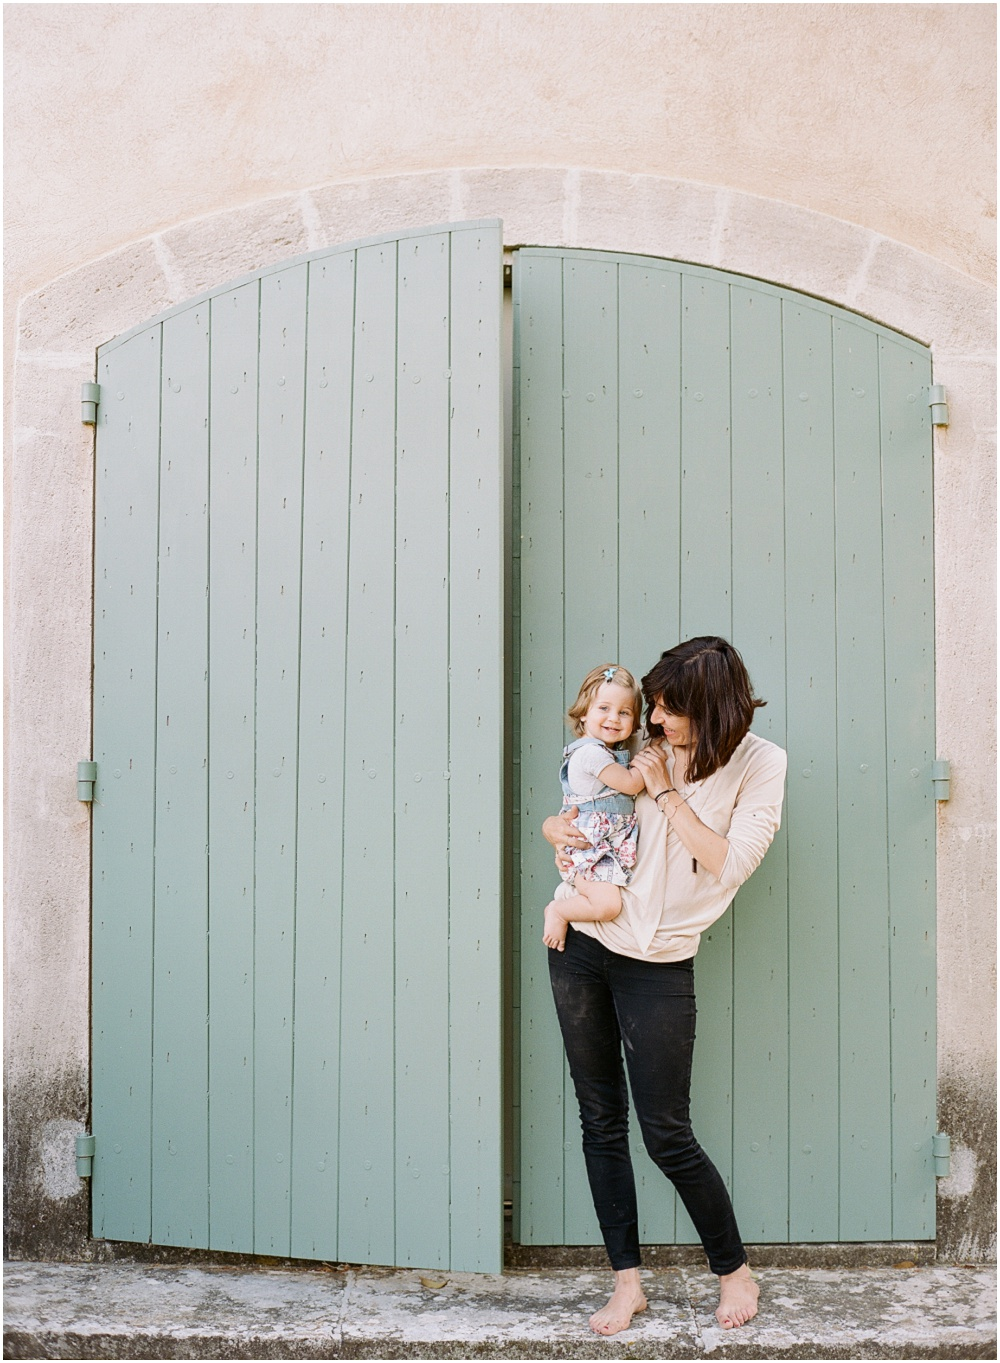 Motherhood Photography by Charlie Juliet and featured on The Fount Collective, a lifestyle publication and community devoted to the art of being a mother._0007.jpg